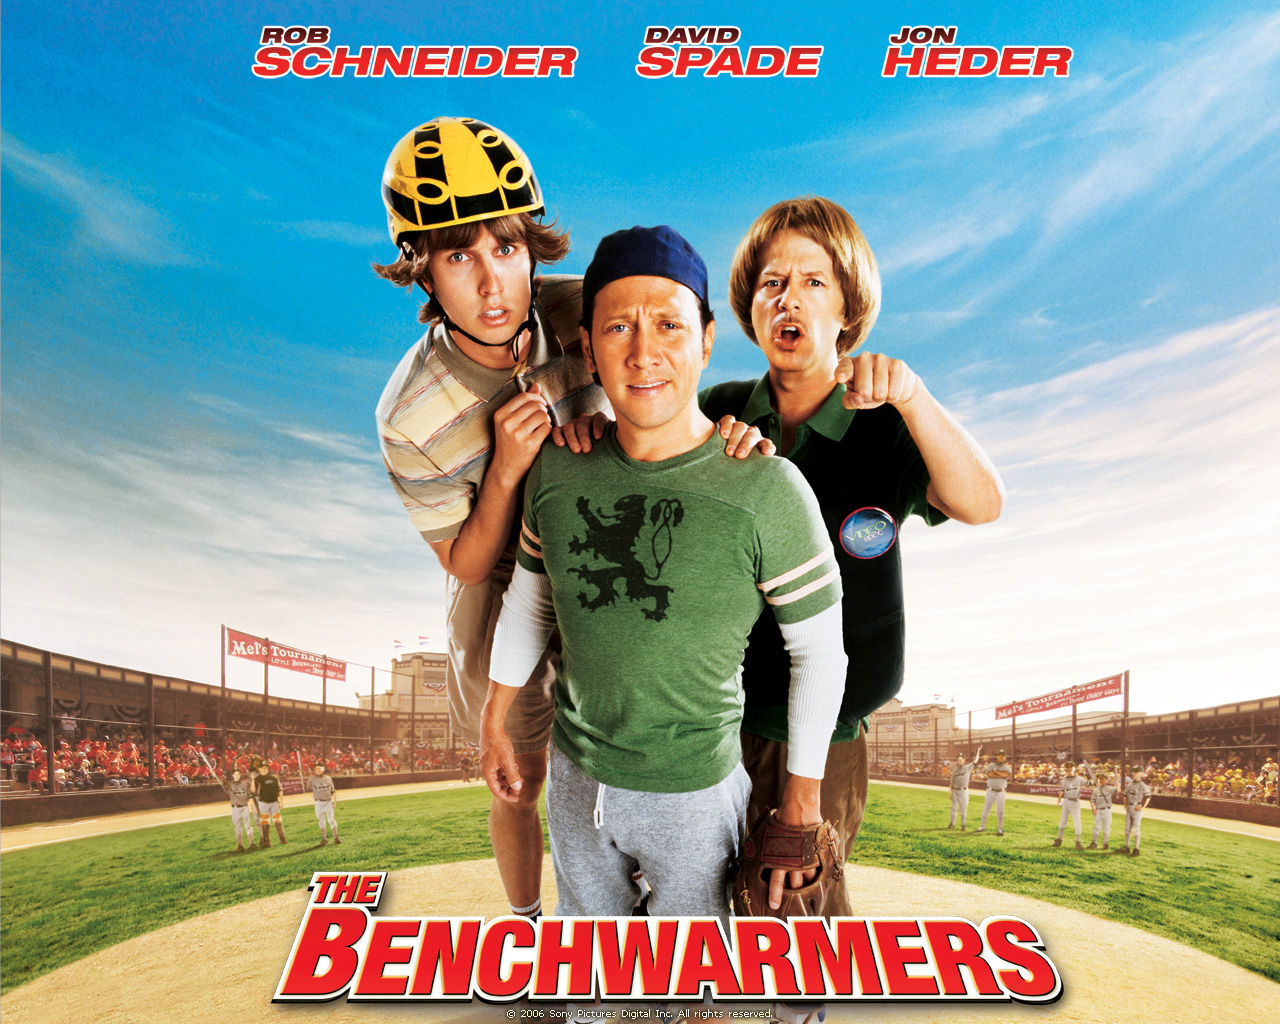 The Benchwarmers movie